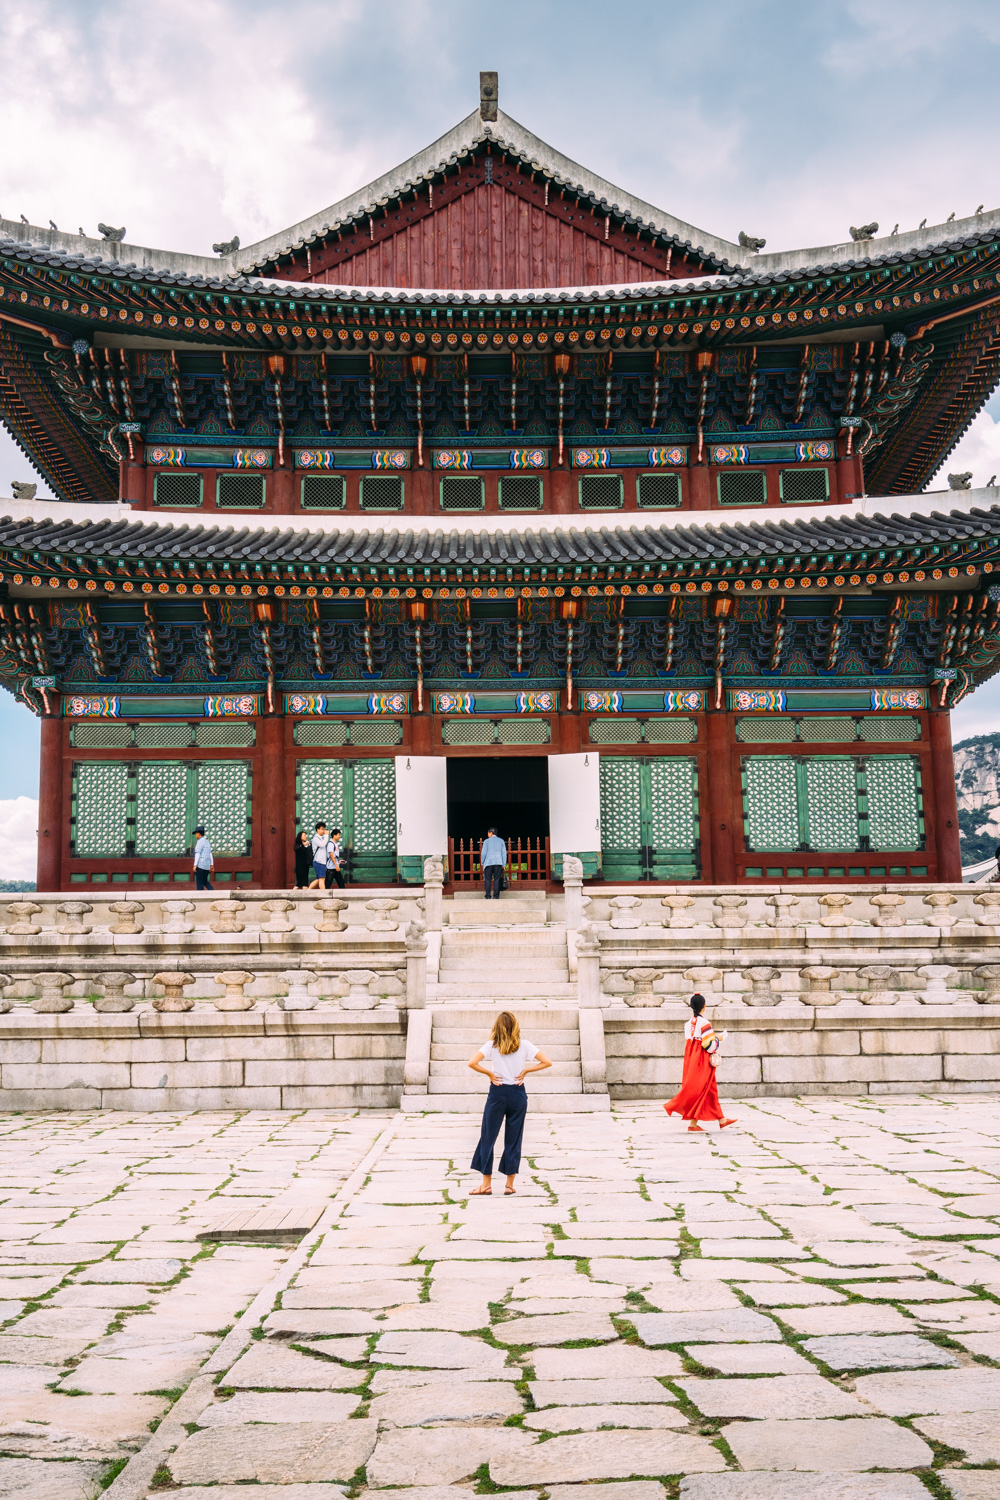 Admiring the Gyeongbokgung palace.